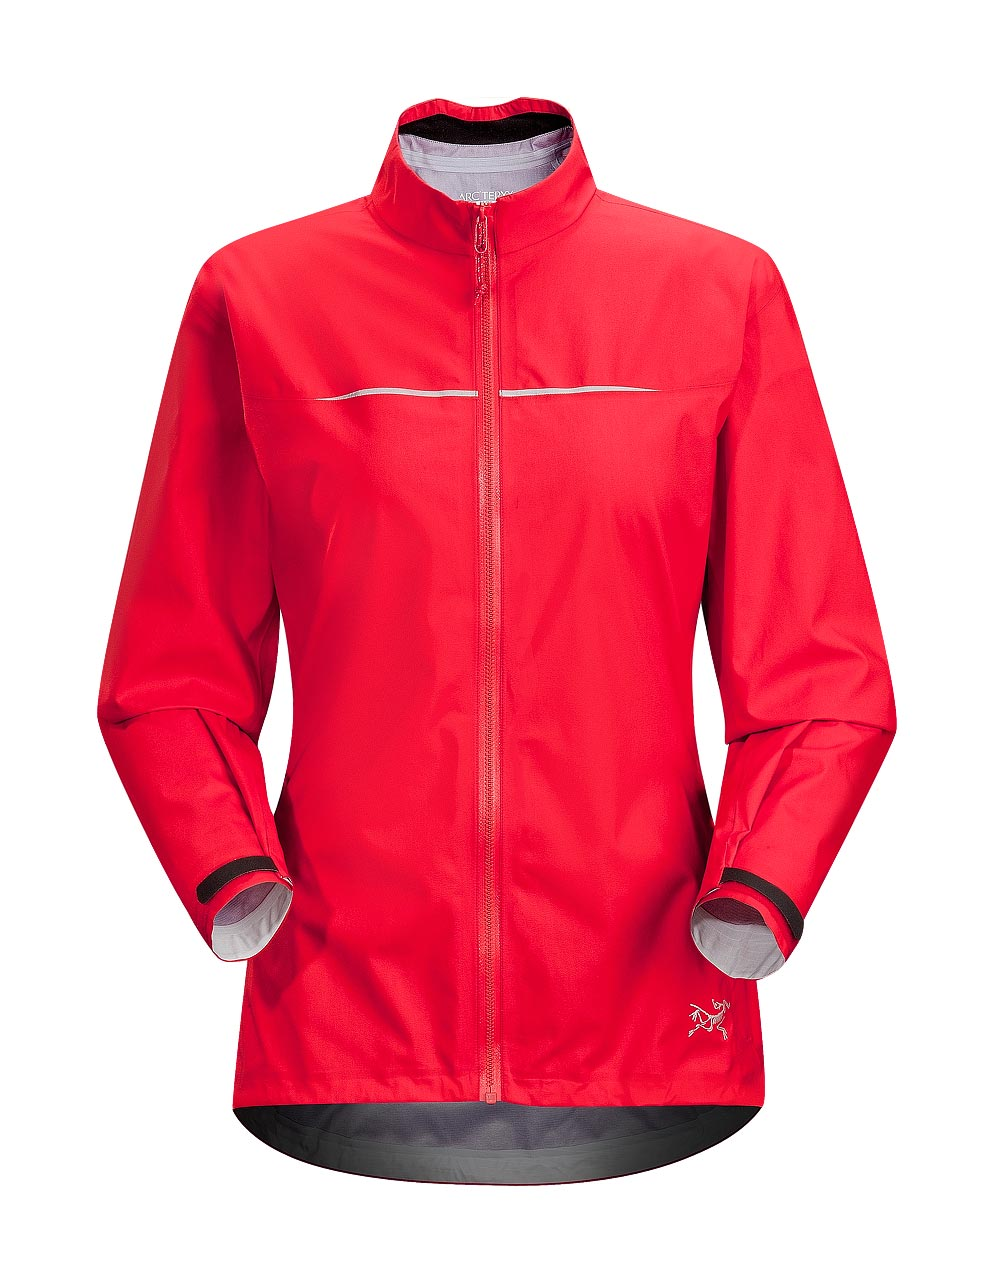 Arcteryx Grenadine Visio FL Jacket - New